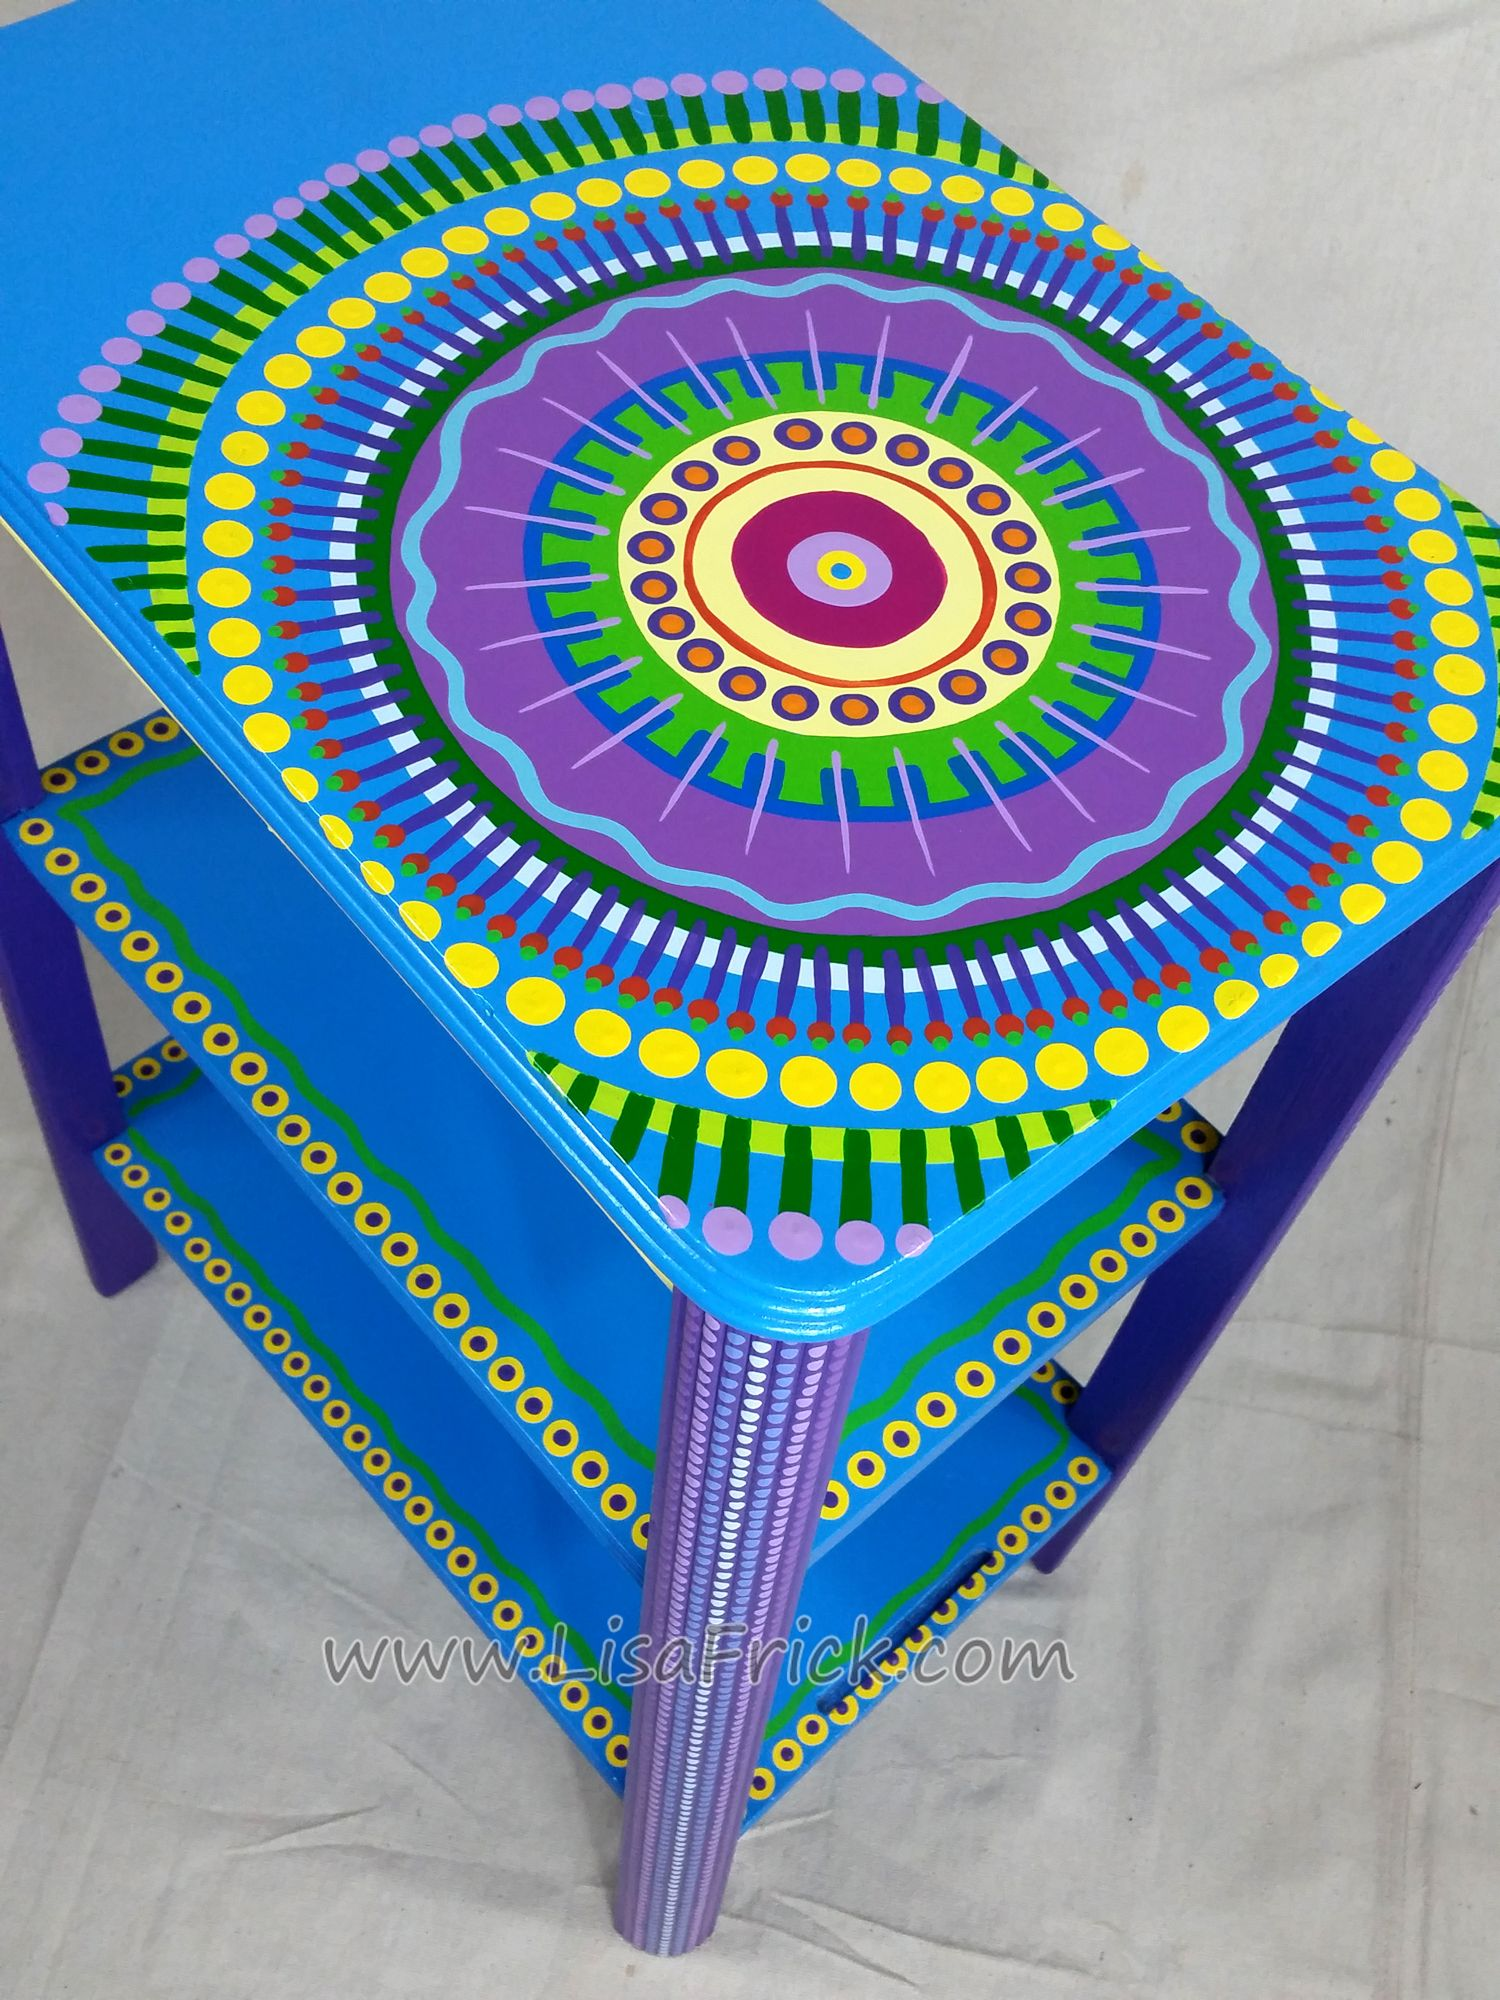 Blue Mandala up-cycled side table by Lisa Frick